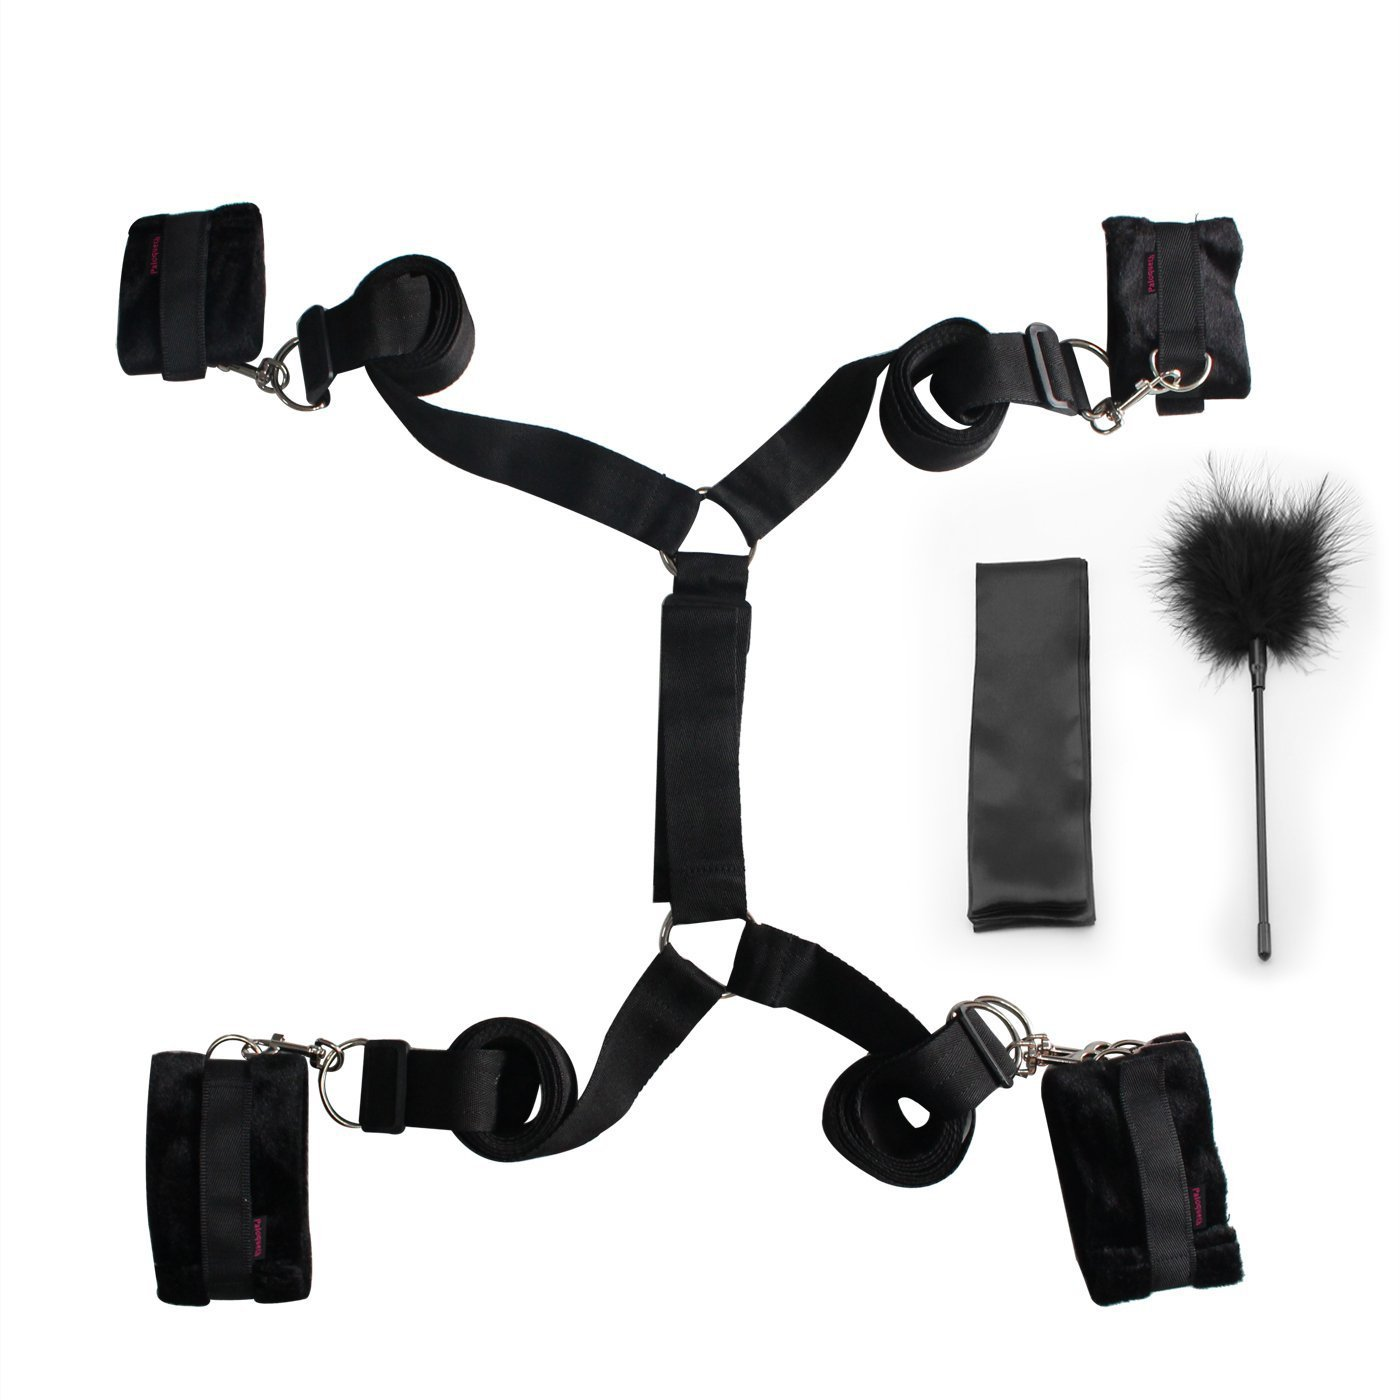 Amazon.com: BDSM Restraints Kit with Adjustable Straps Strong Velcro for  Bedroom Fun, PALOQUETH Under Bed Restraints with Comfortable Cuffs Flirting  Feather ...